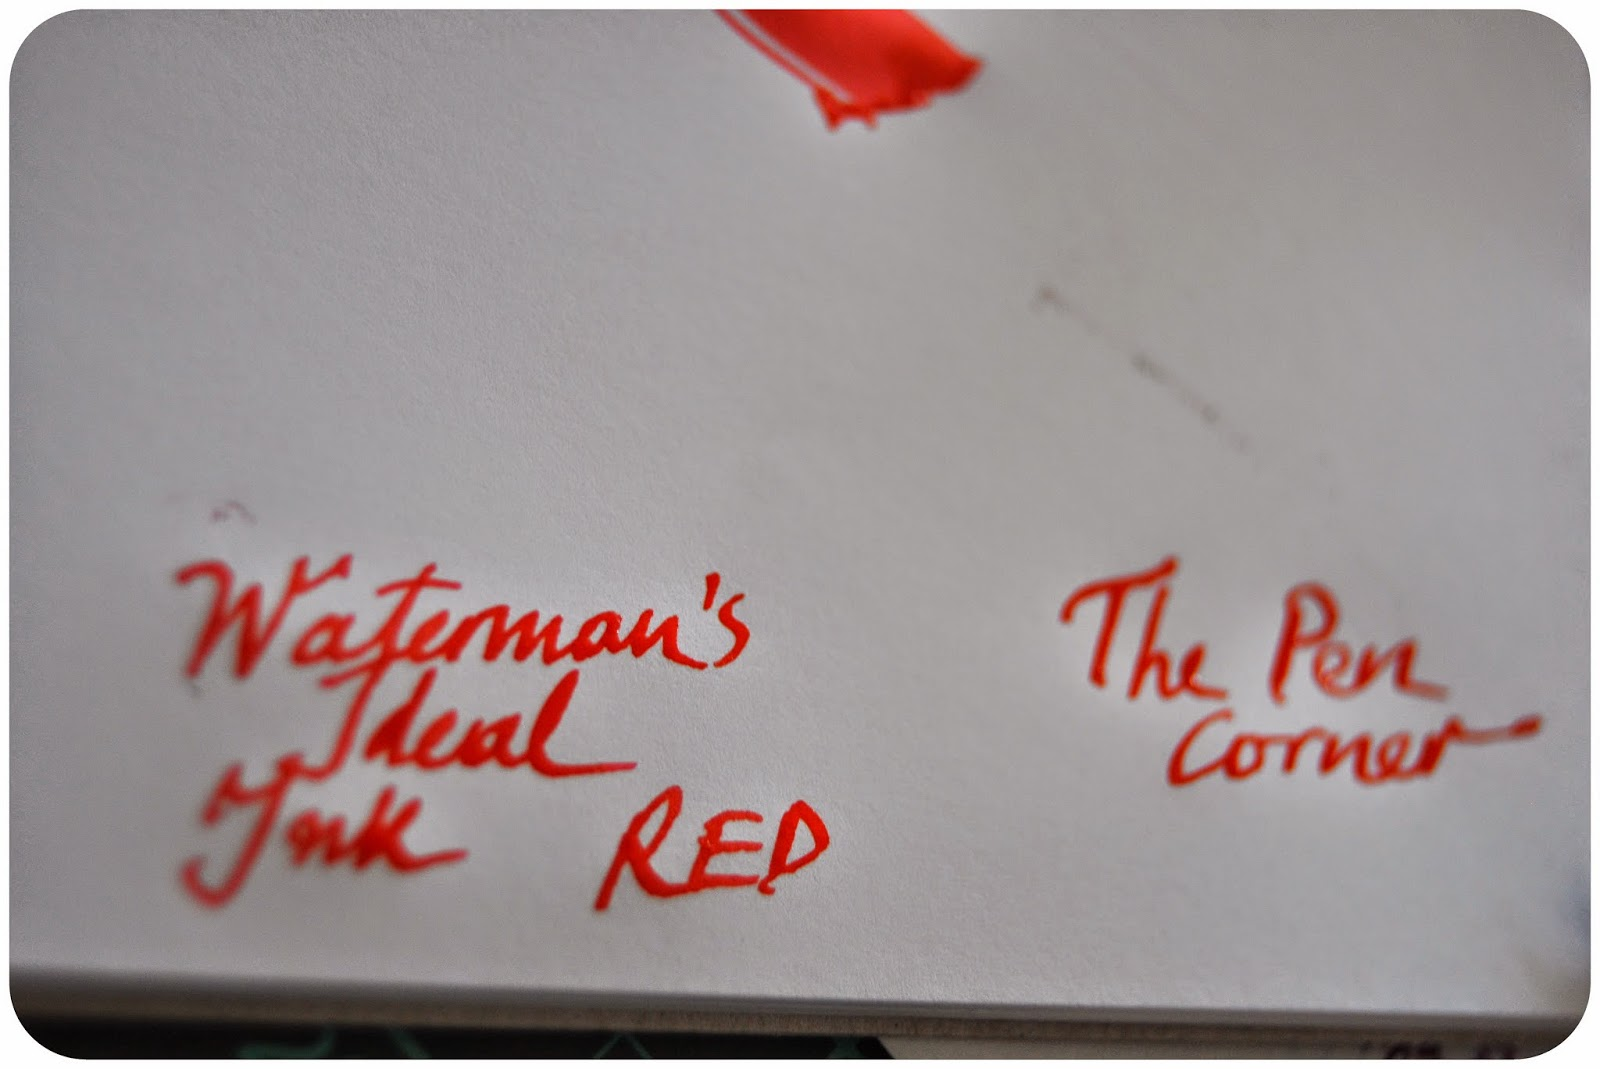 Red ink on term paper